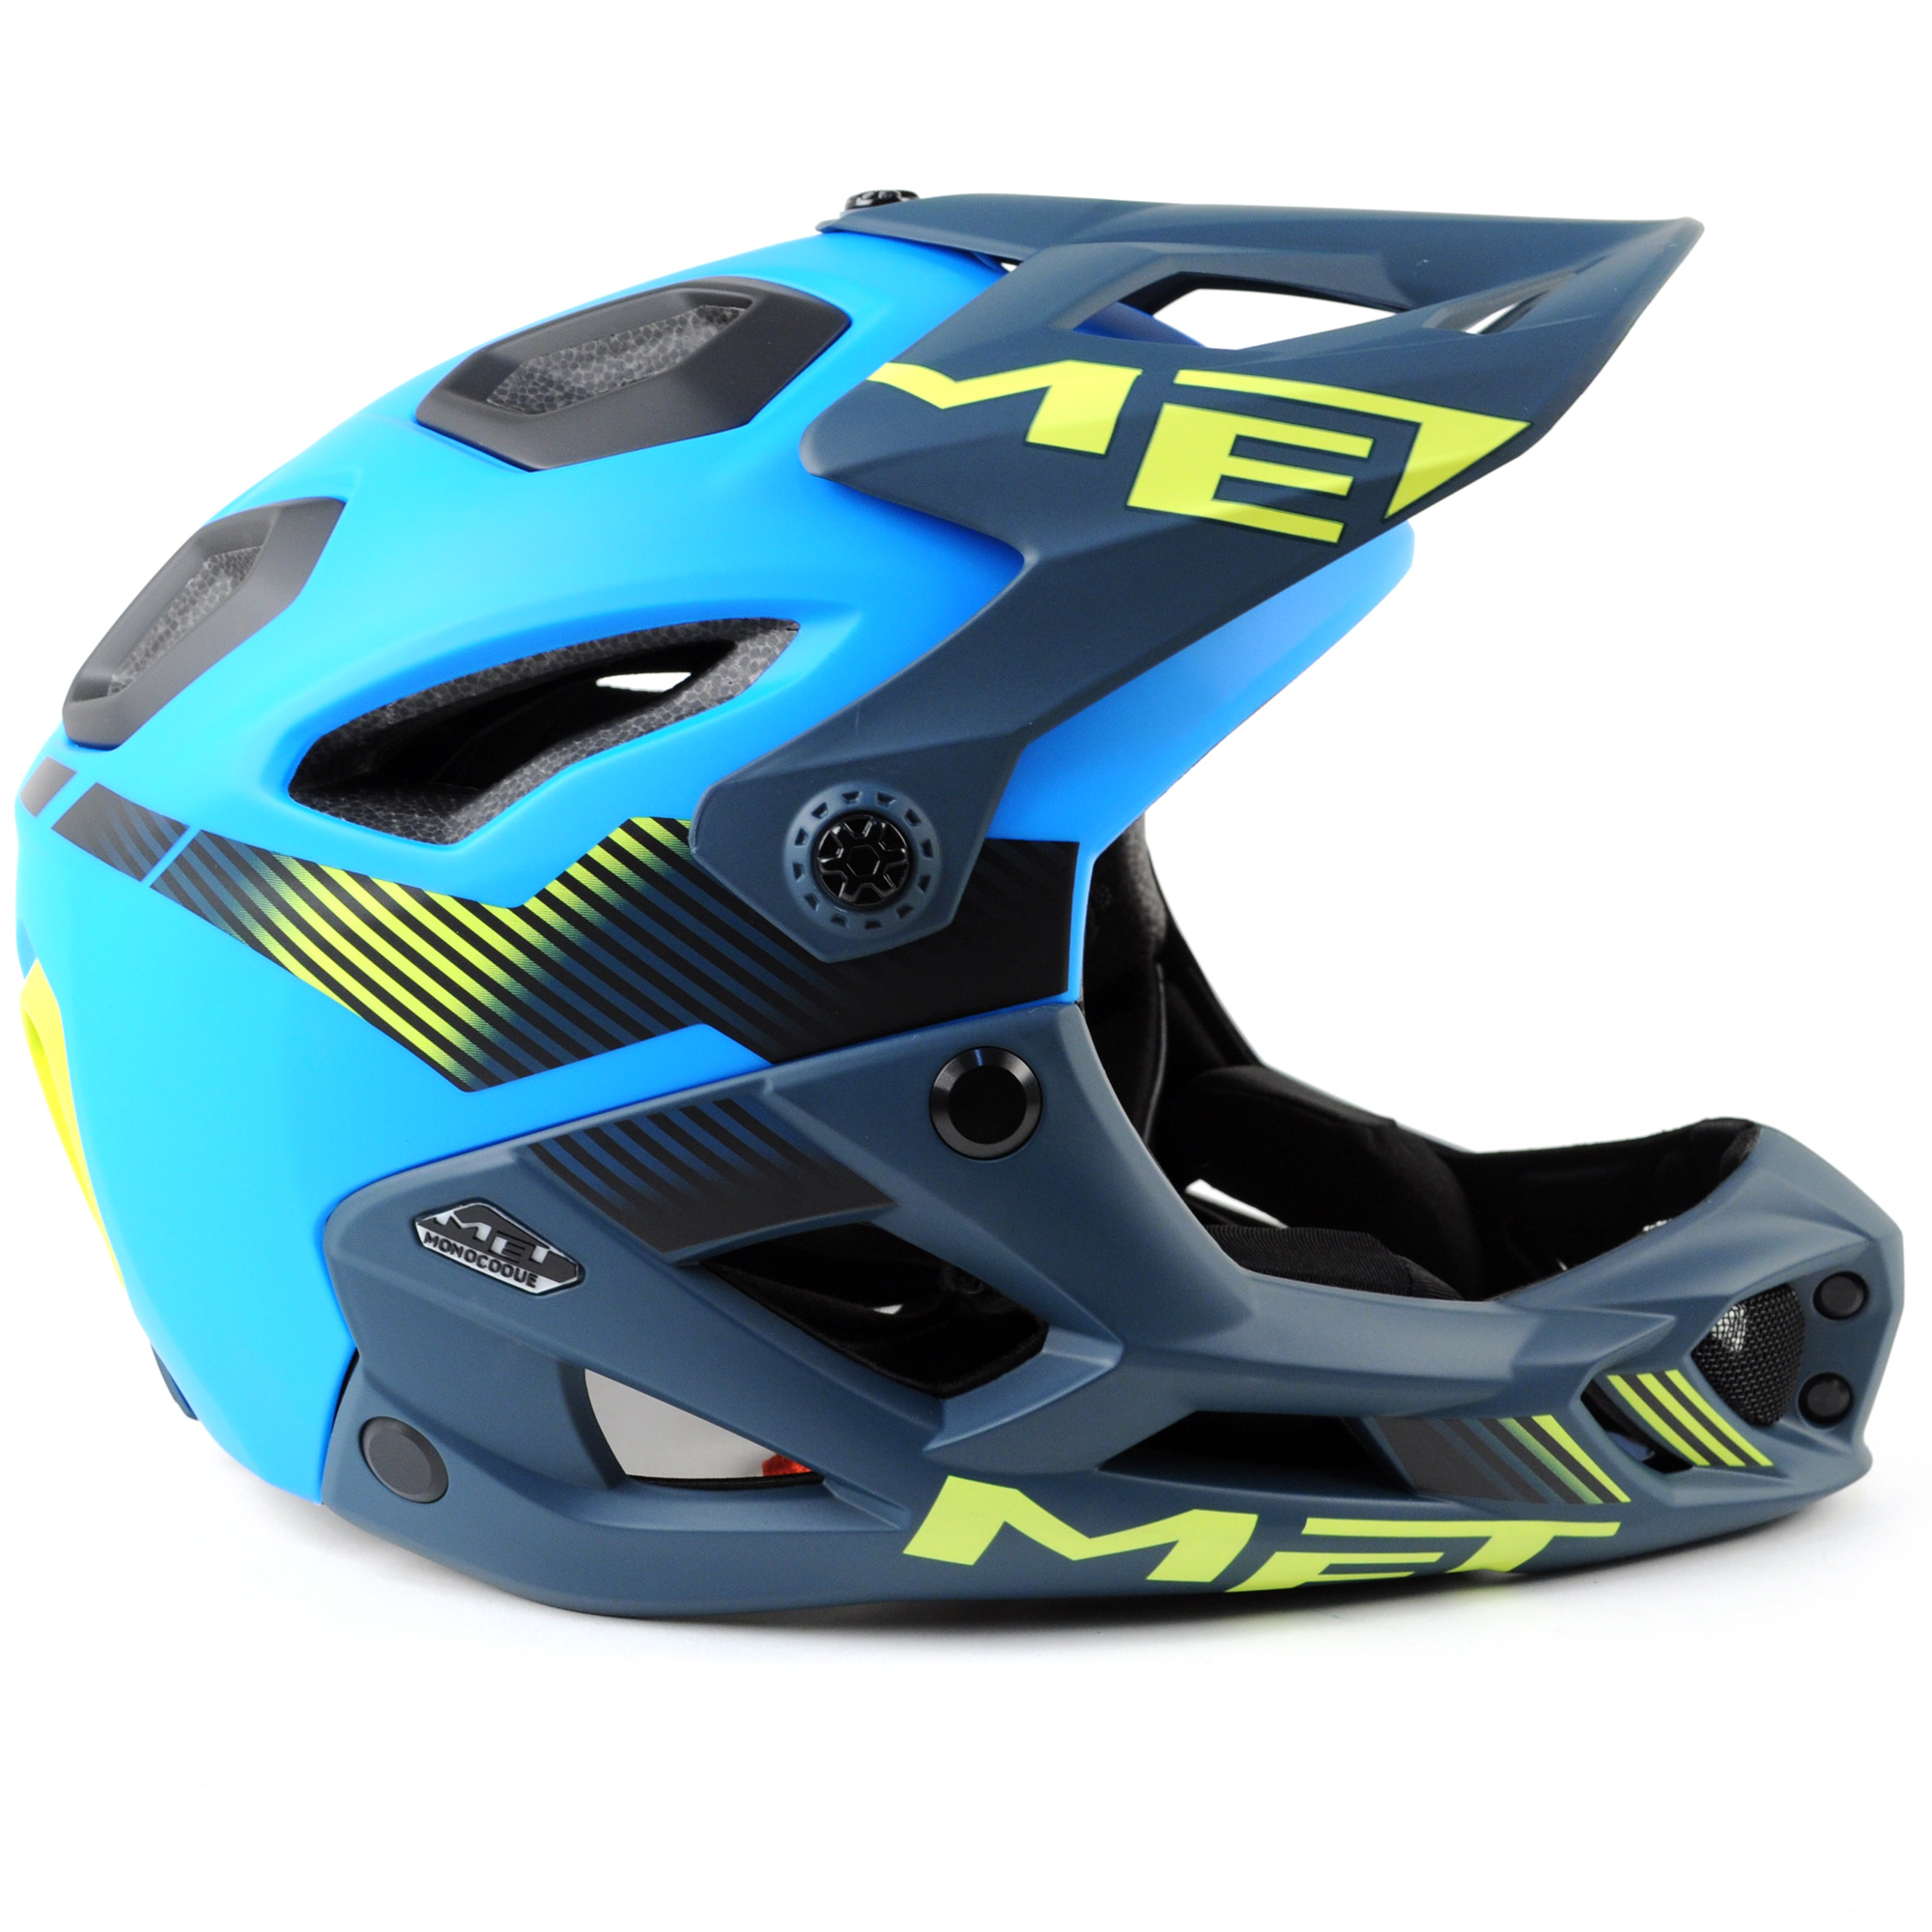 The Best Full Face Downhill Mountain Bike Helmets Outdoorgearlab